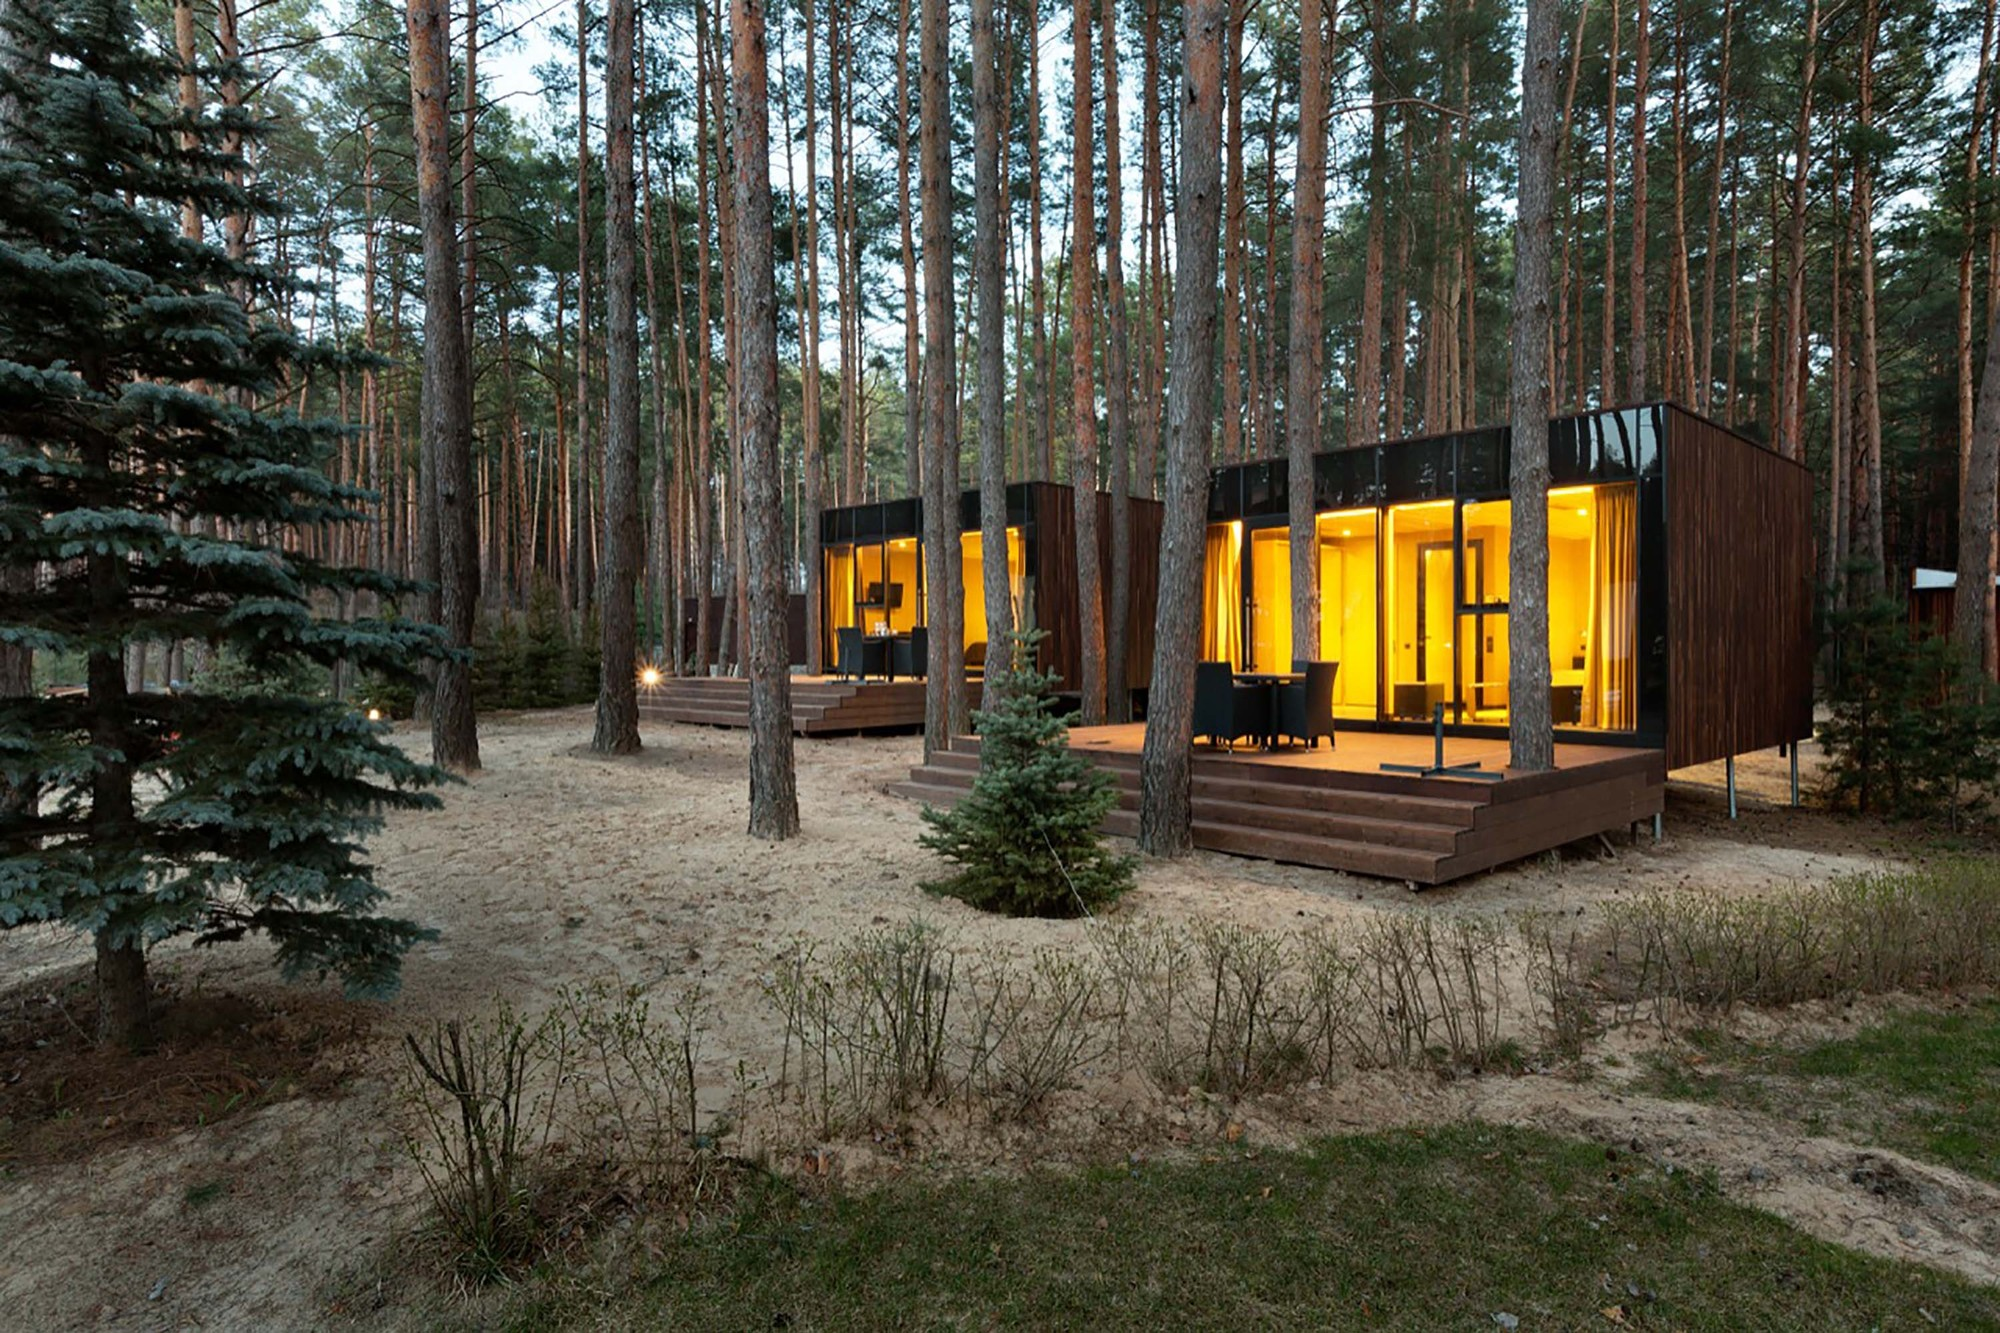 Printing houses of Poltava region: a selection of sites